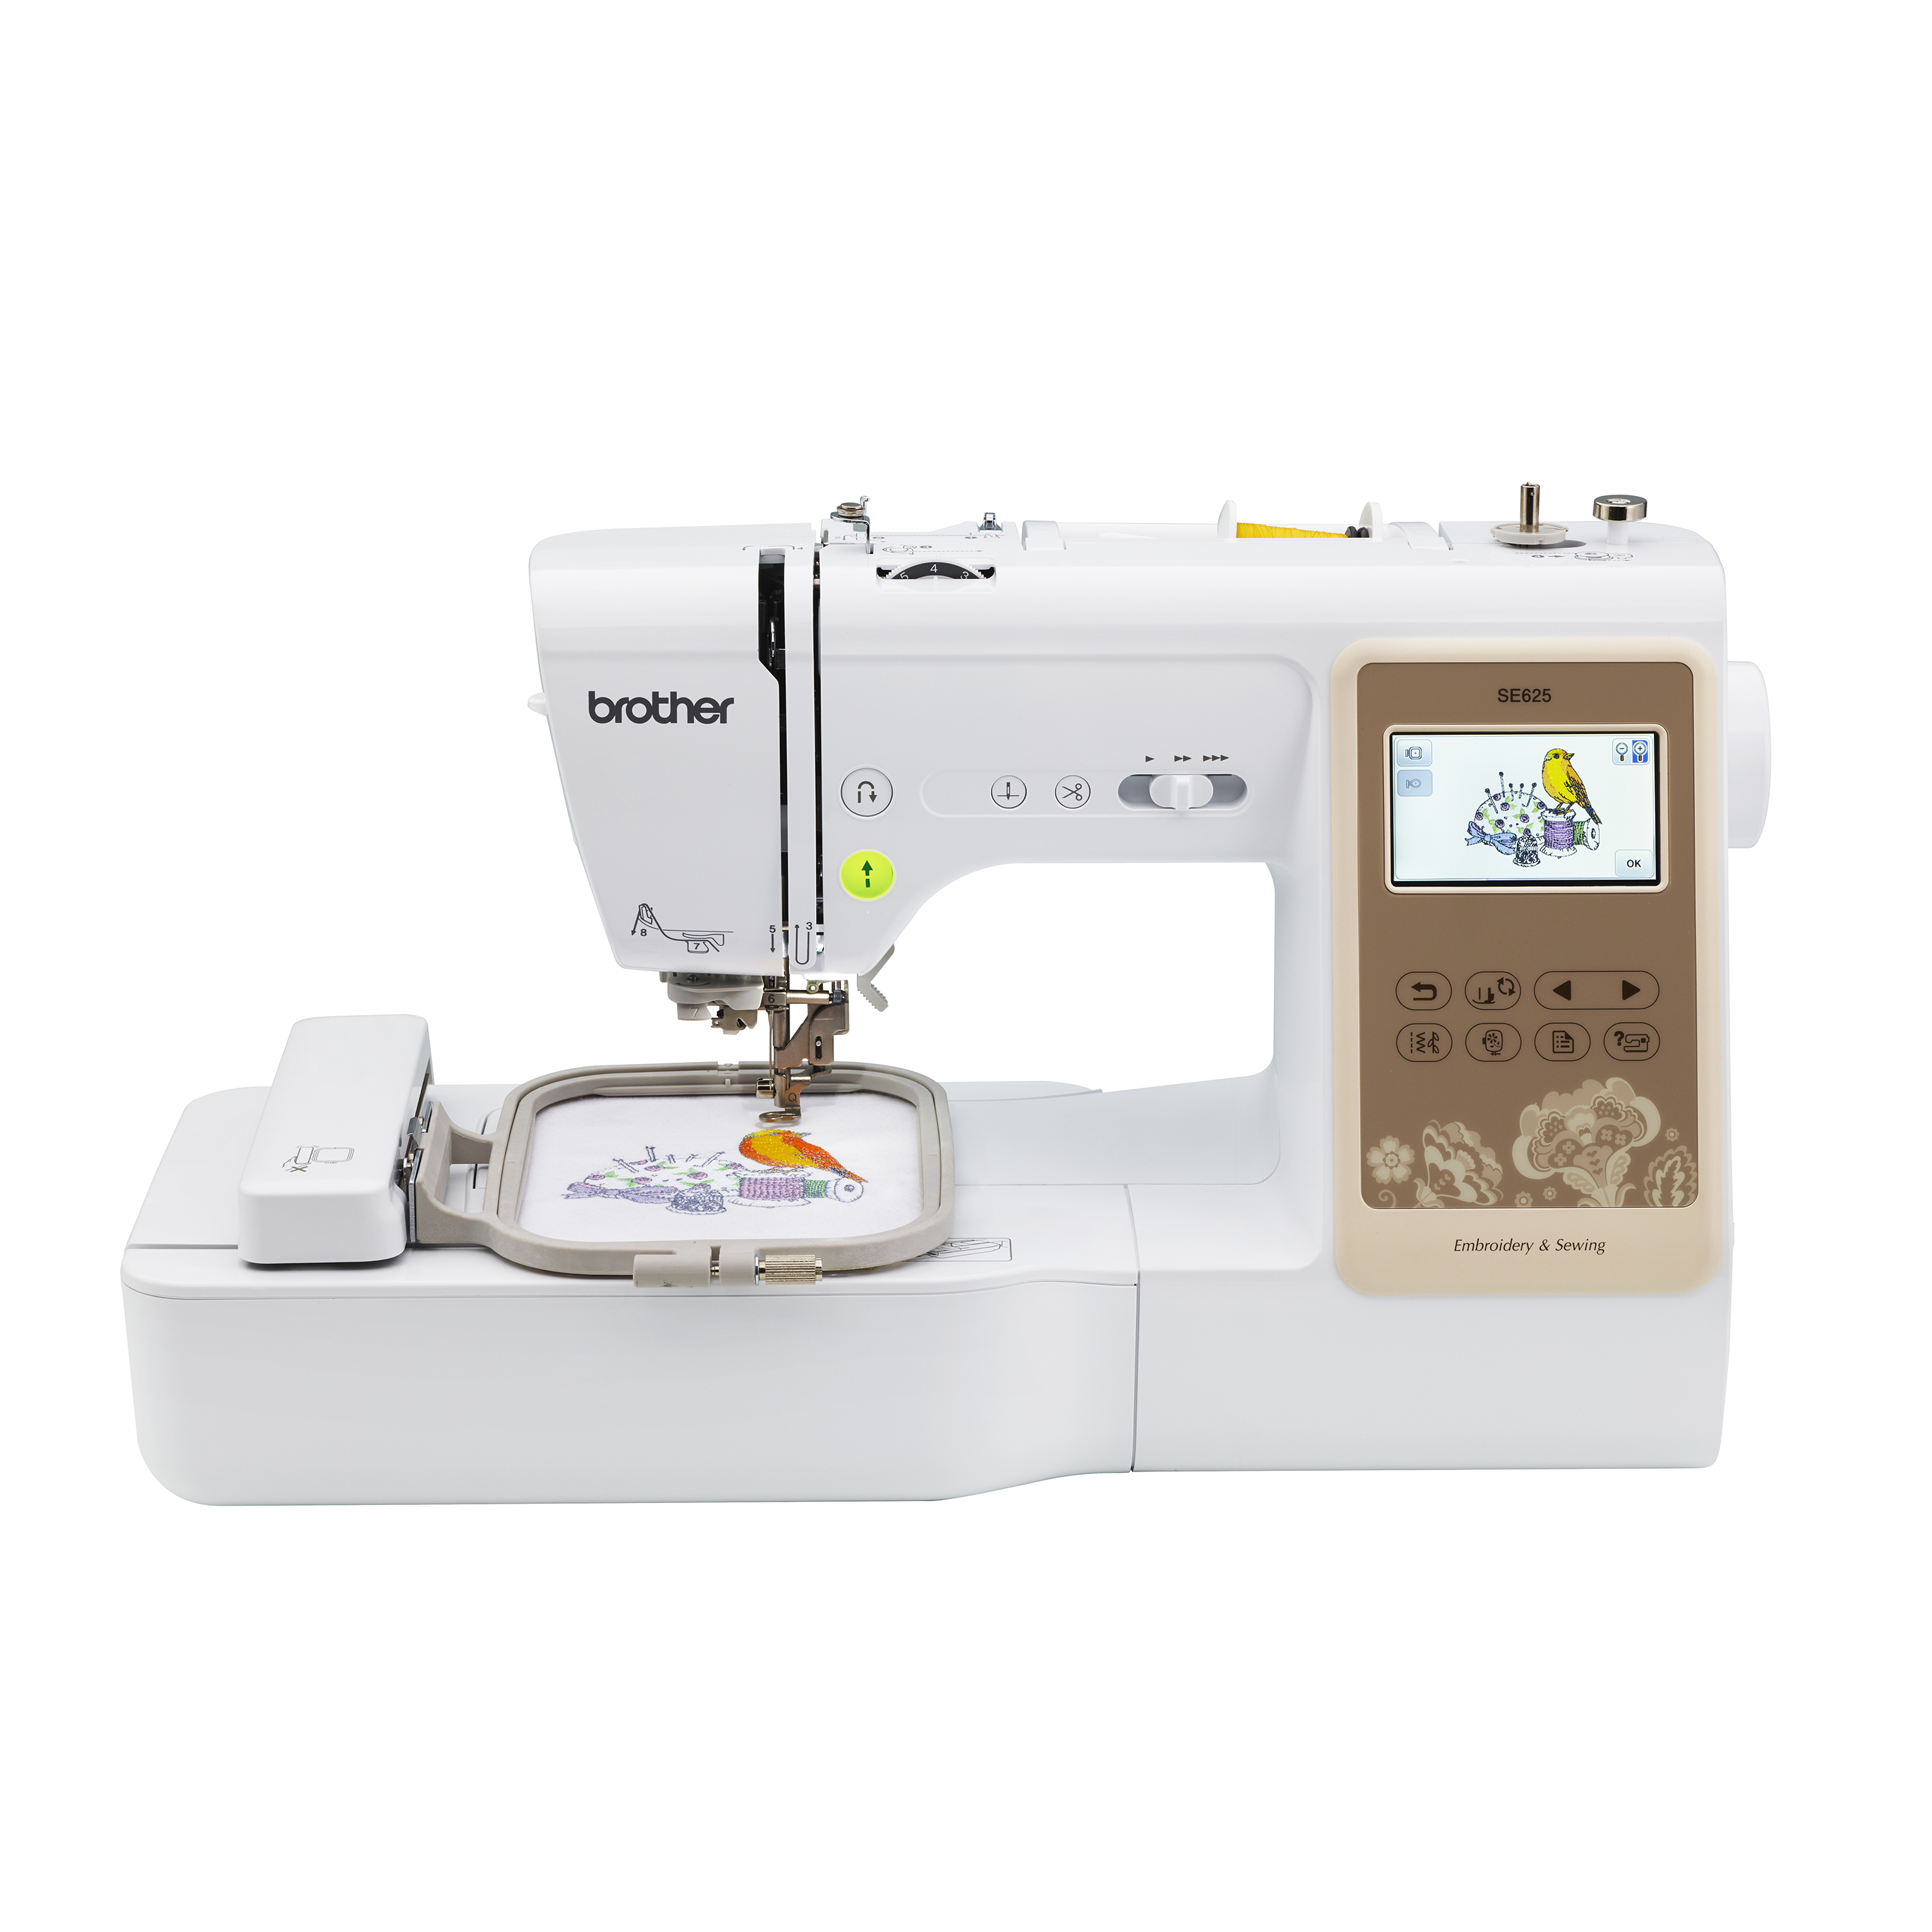 brother se625 combination computerized sewing and 4x4 embroidery rh walmart com Brother PE770 Software Brother PE770 Embroidery Machine Accessories